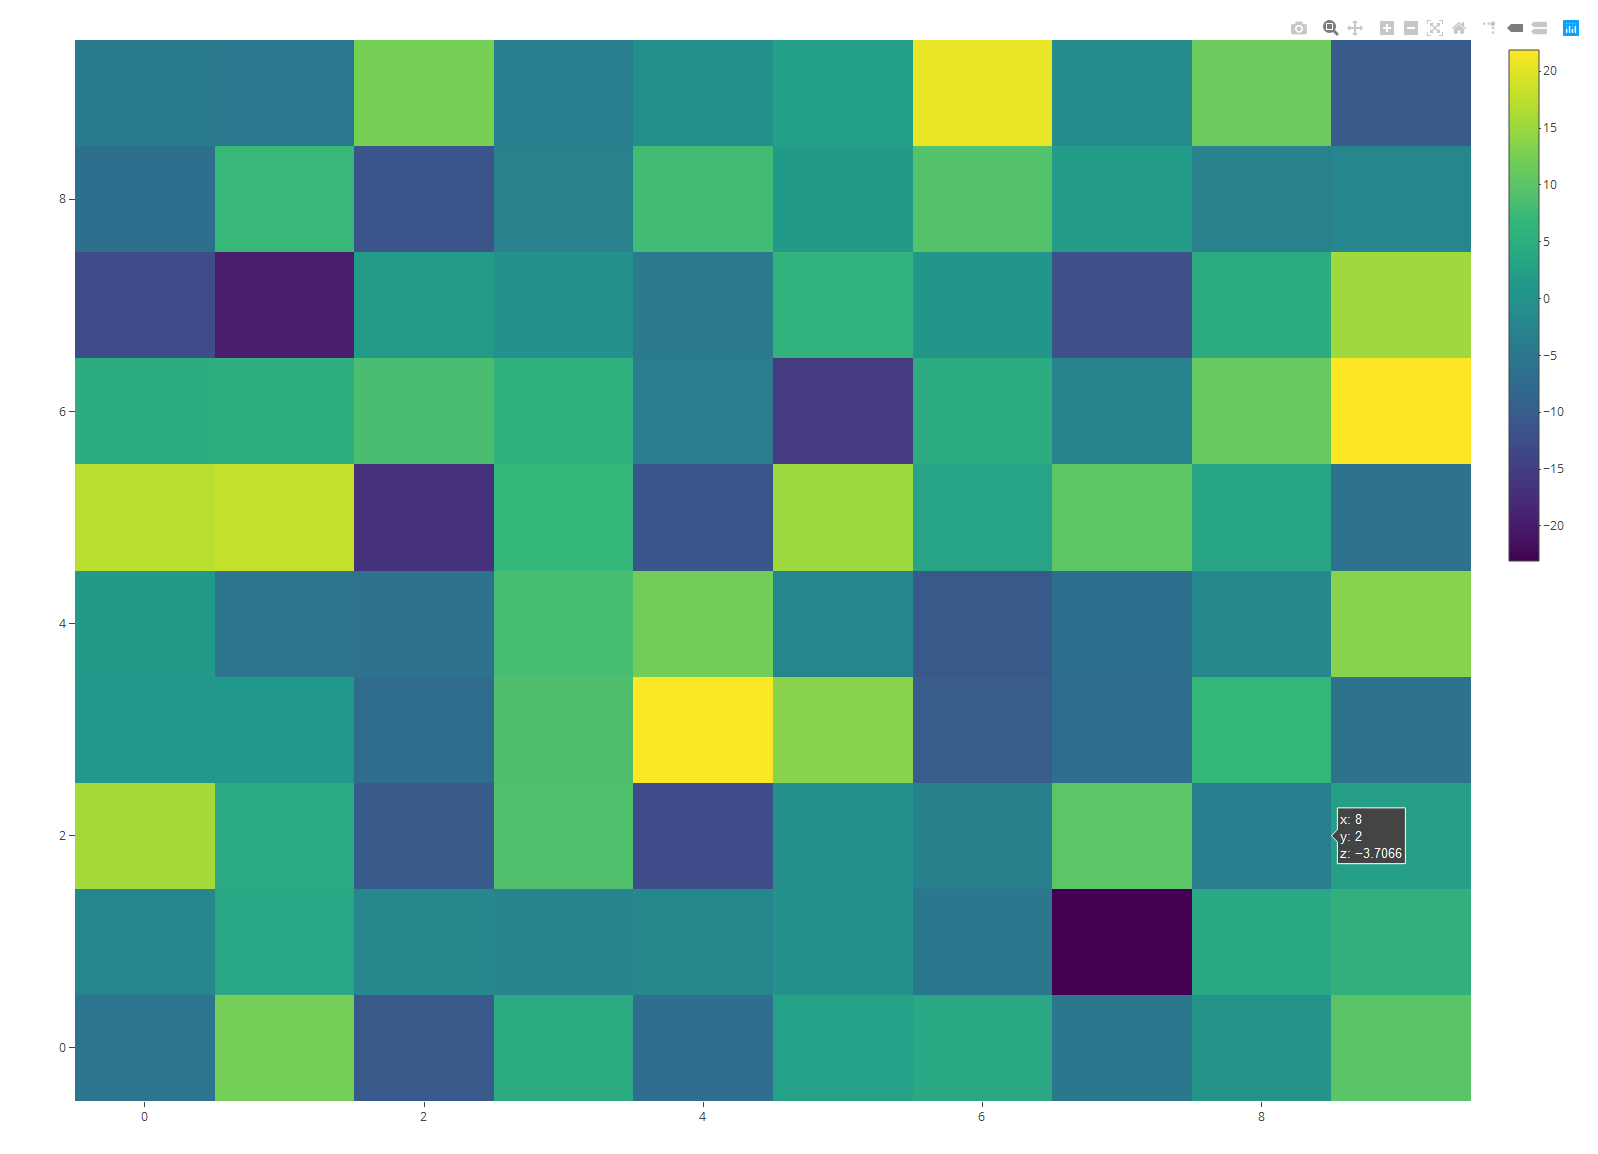 Heatmap in R Programming Example 6